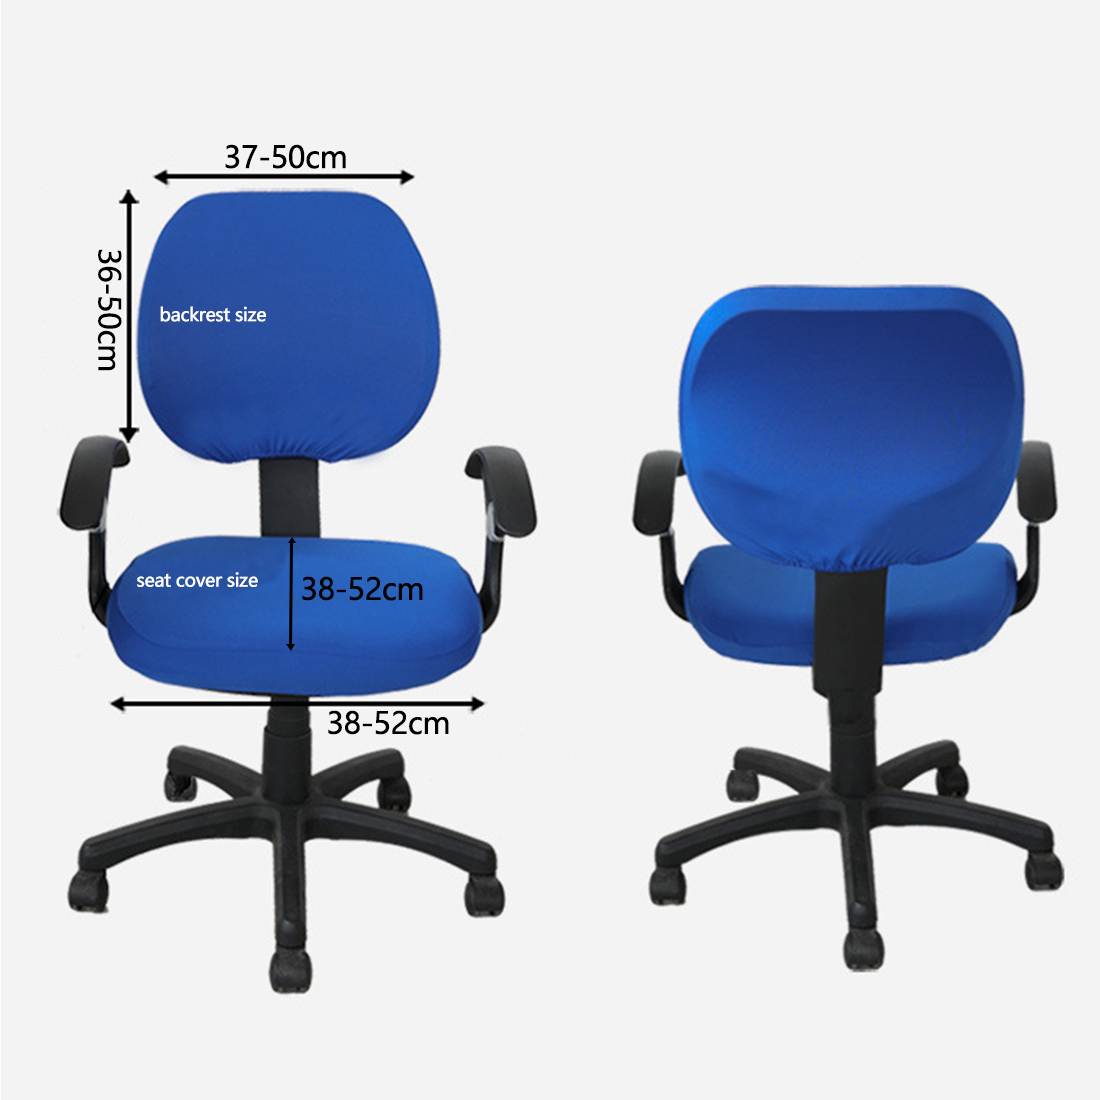 spandex elastic fabric seat covers for computer chairs office chairs